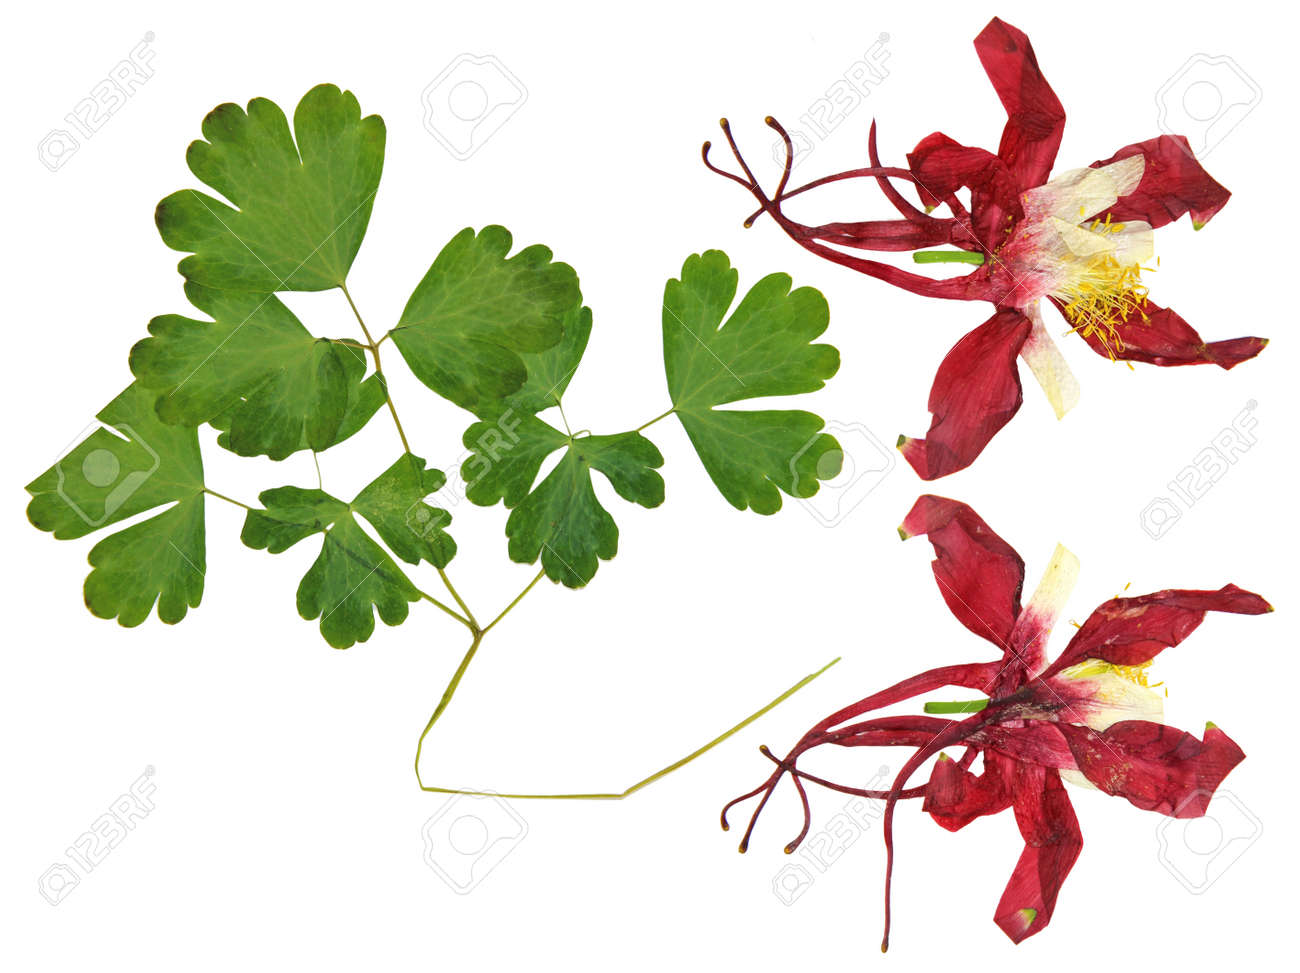 Dry Large Red And White Perspective Delicate Royal Aquilegia Stock